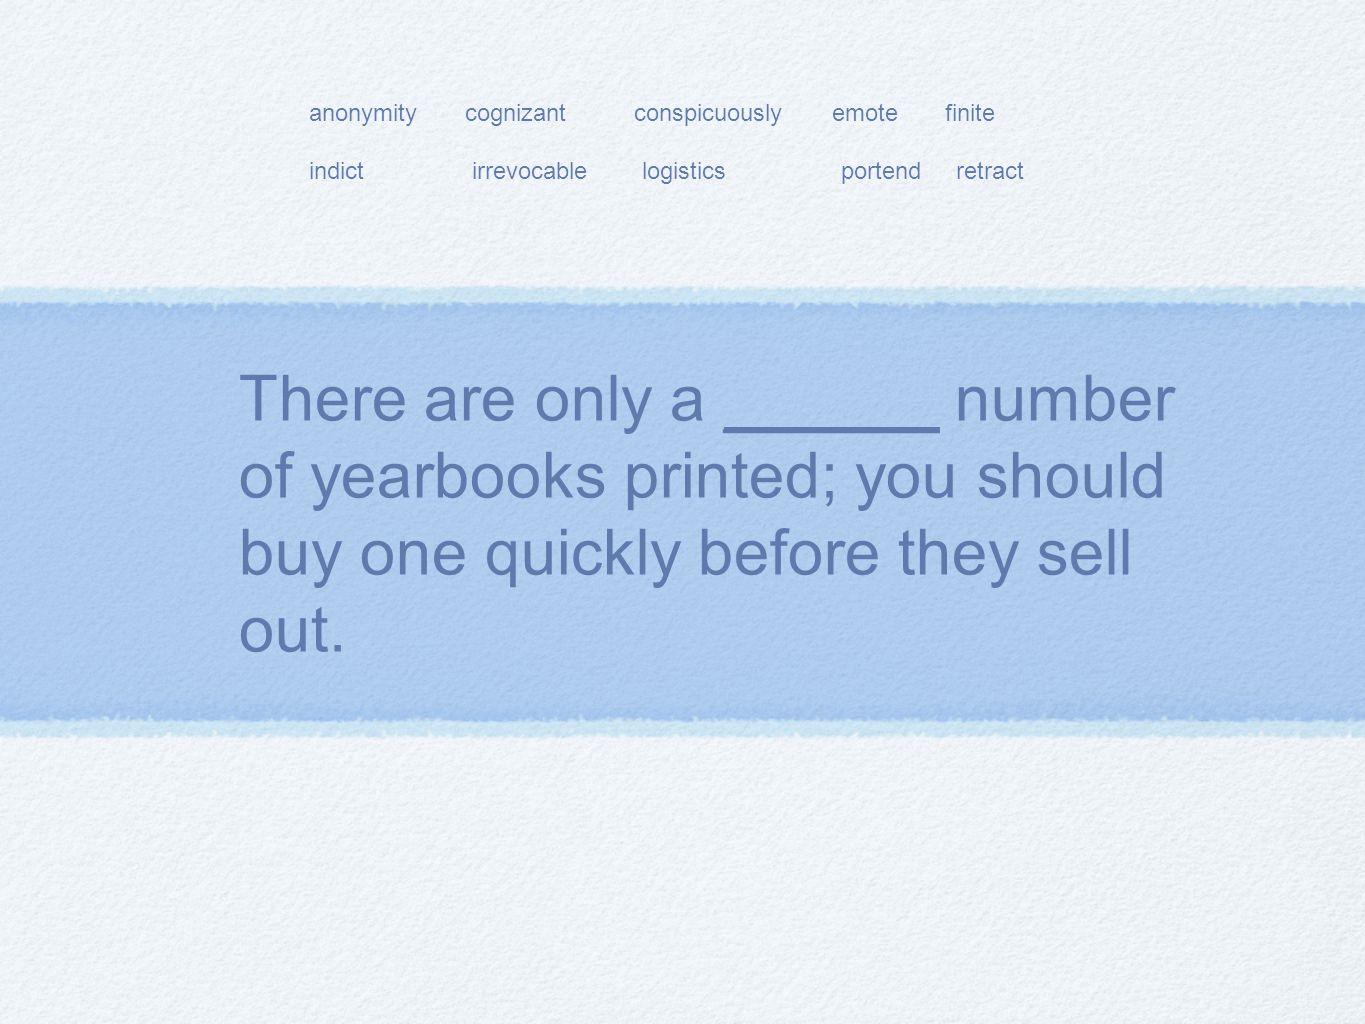 There are only a ______ number of yearbooks printed; you should buy one quickly before they sell out.